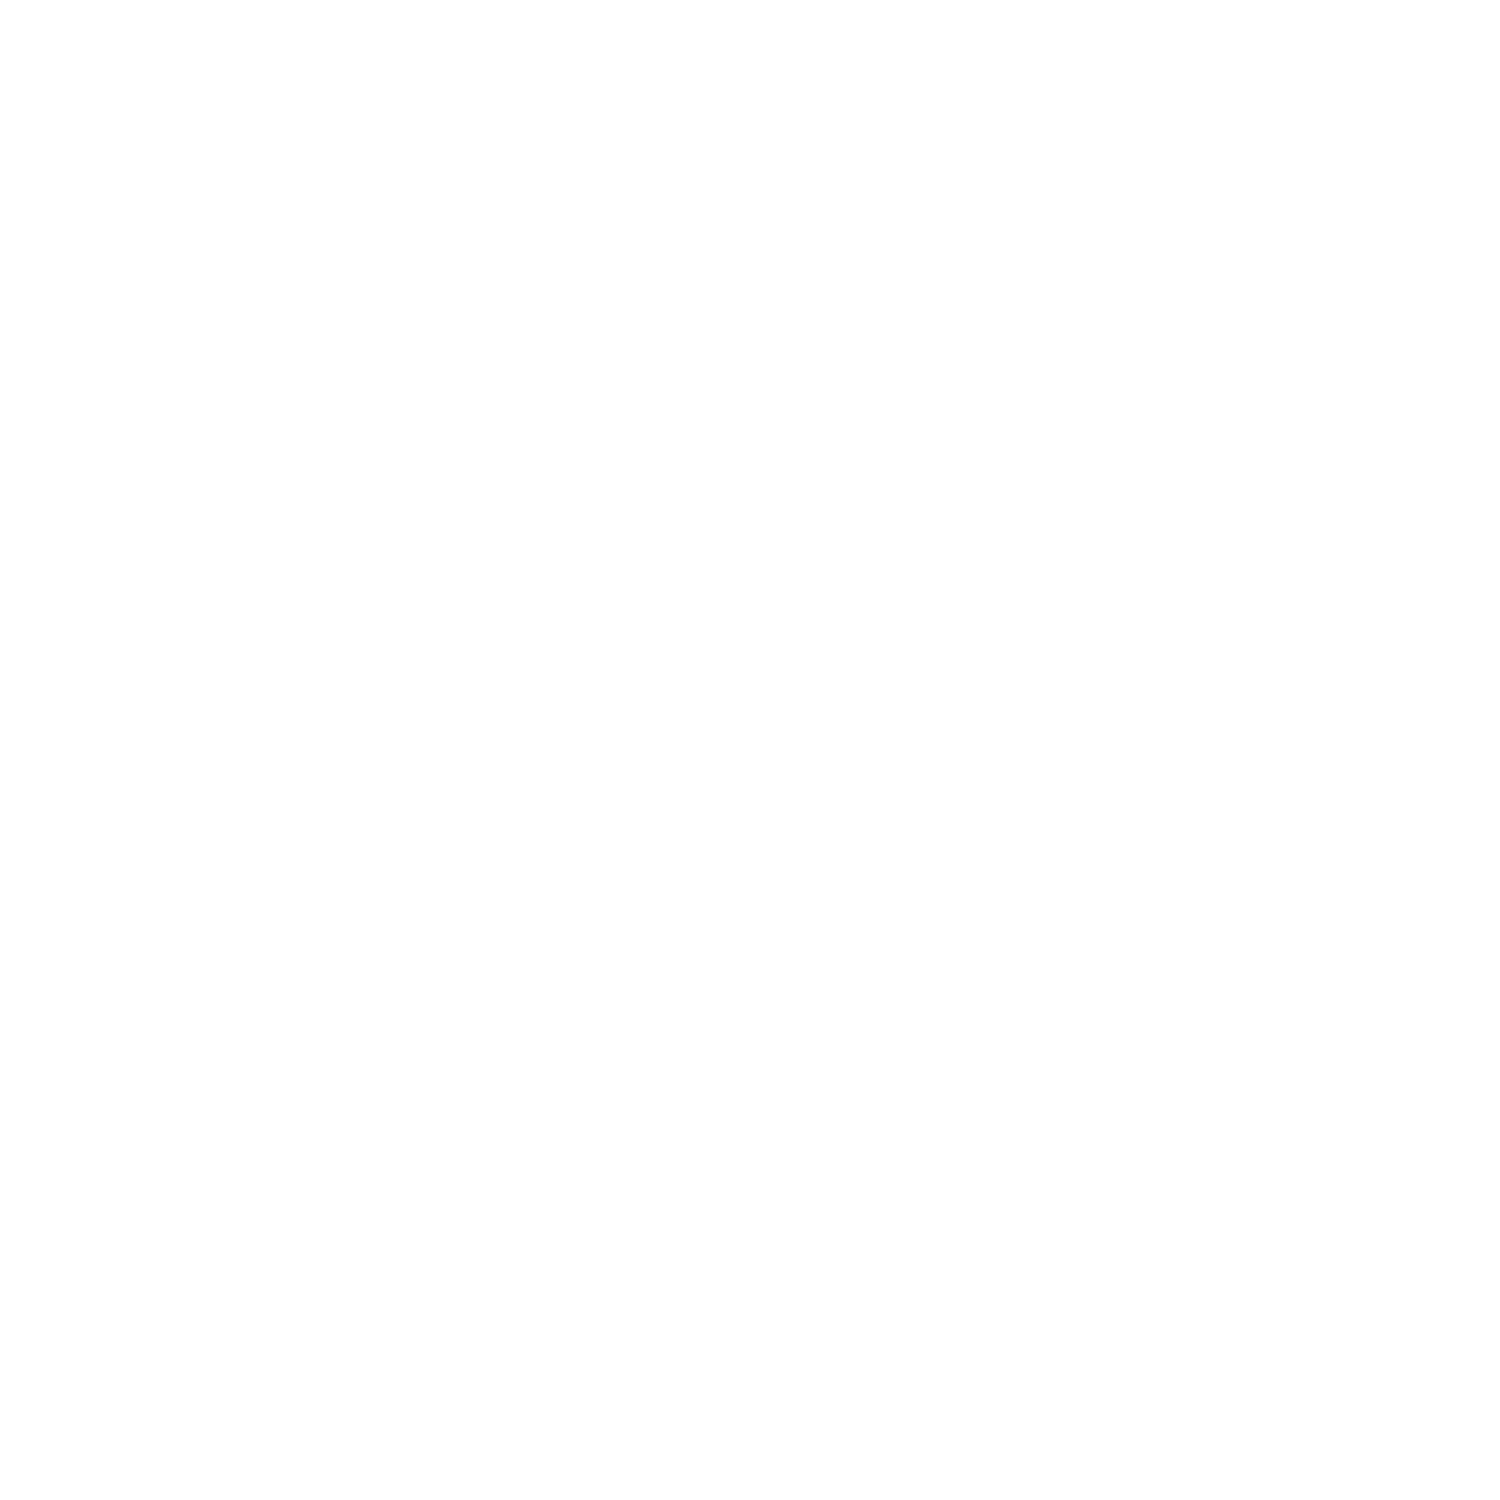 Entwine